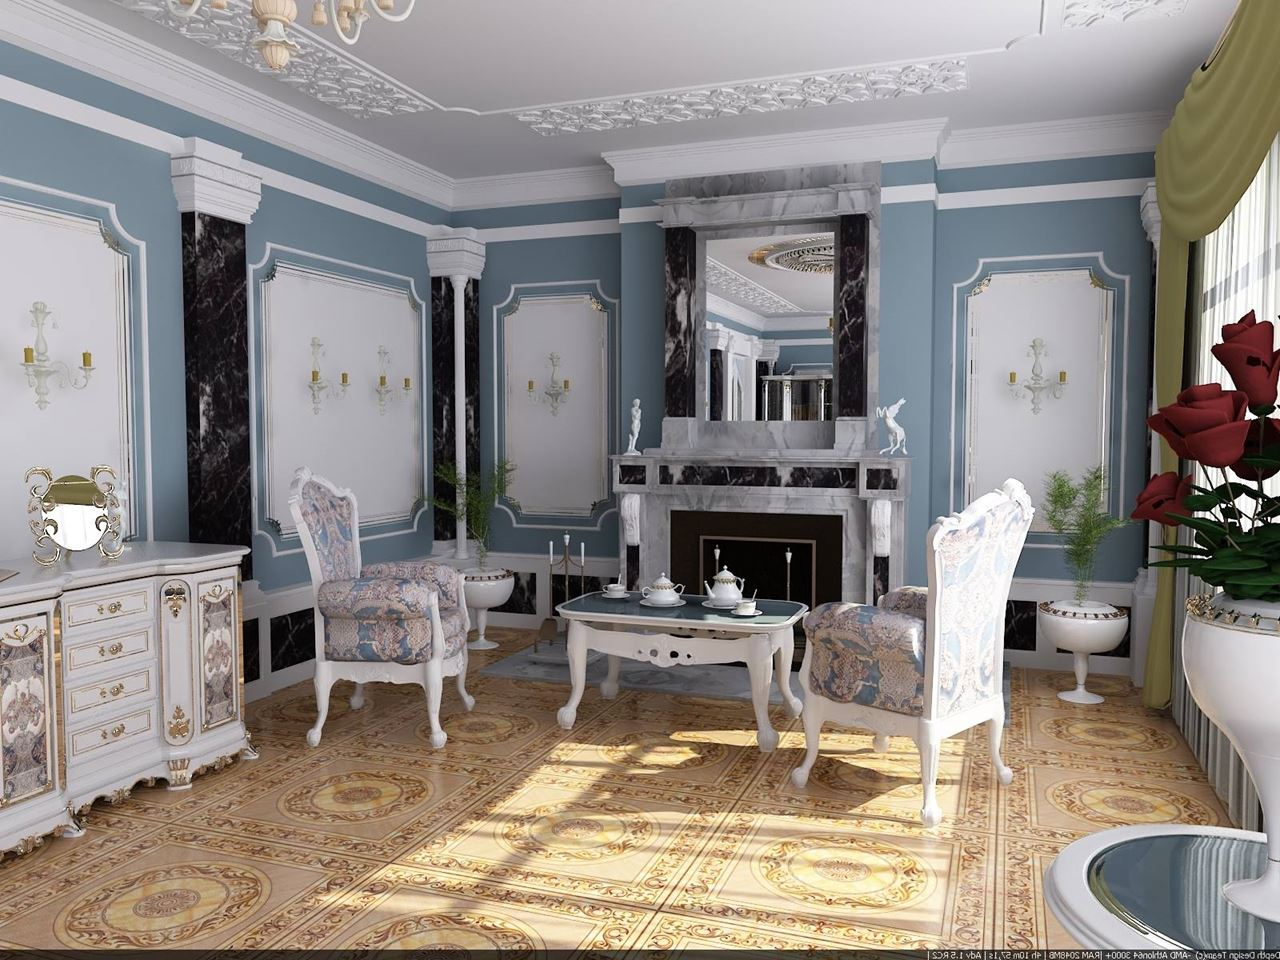 Rococo style interior design ideas Interior decorating ideas